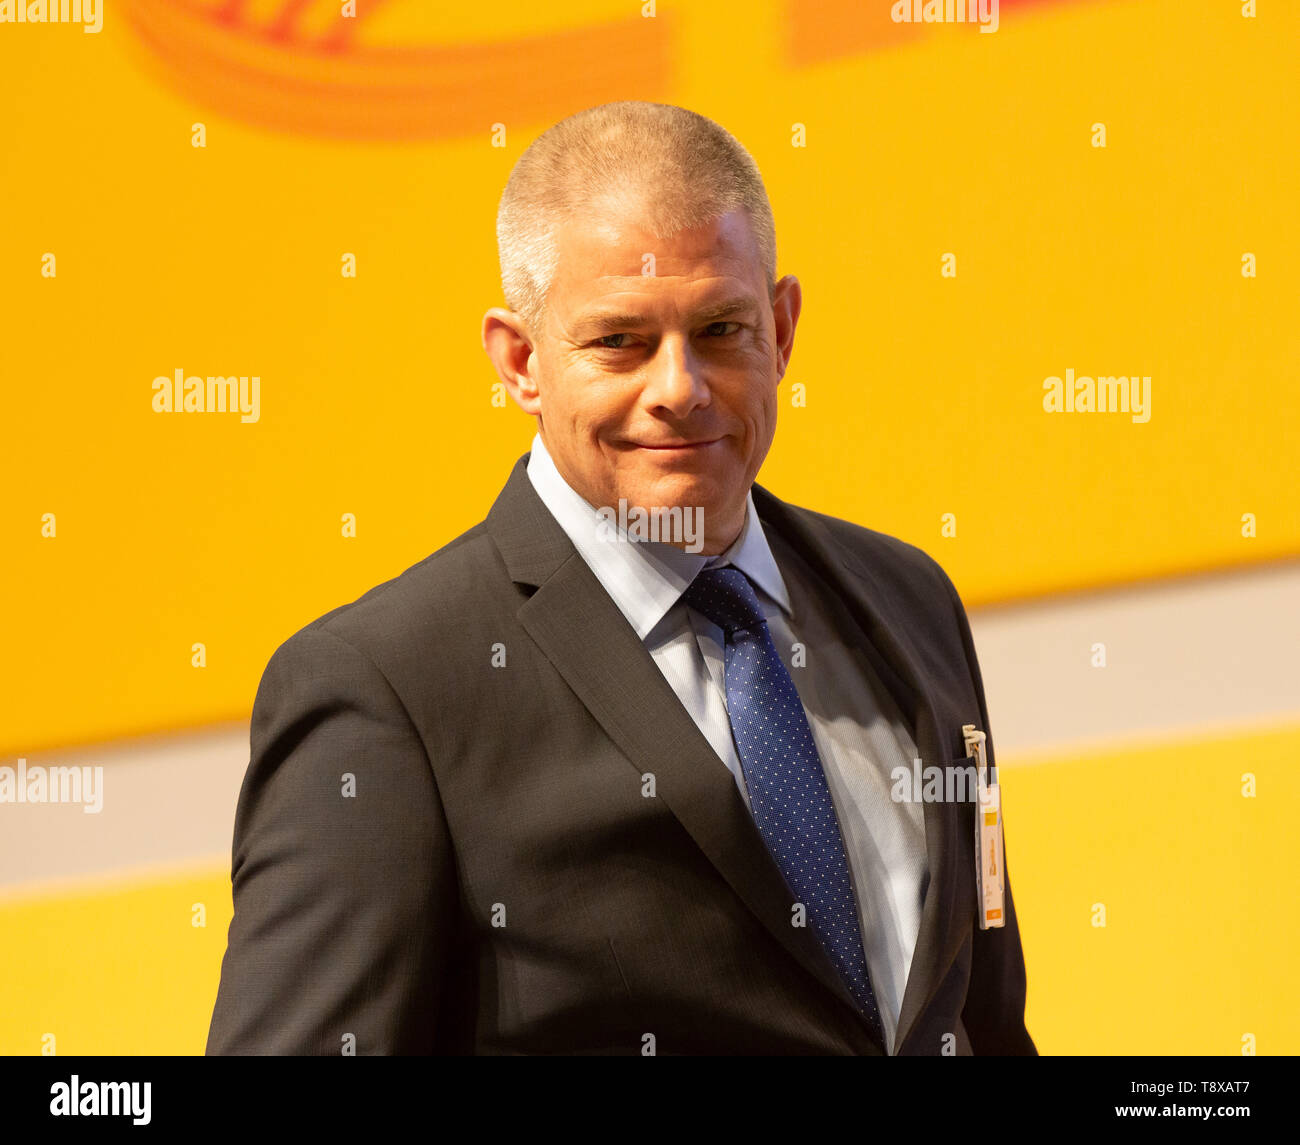 Bonn, Deutschland. 15th May, 2019. Germany, Bonn, May 5 2019, Deutsche Post DHL Annual General Meeting: Member of the executive board John Gilbert. Credit: Juergen Schwarz/Alamy Live News - Stock Image